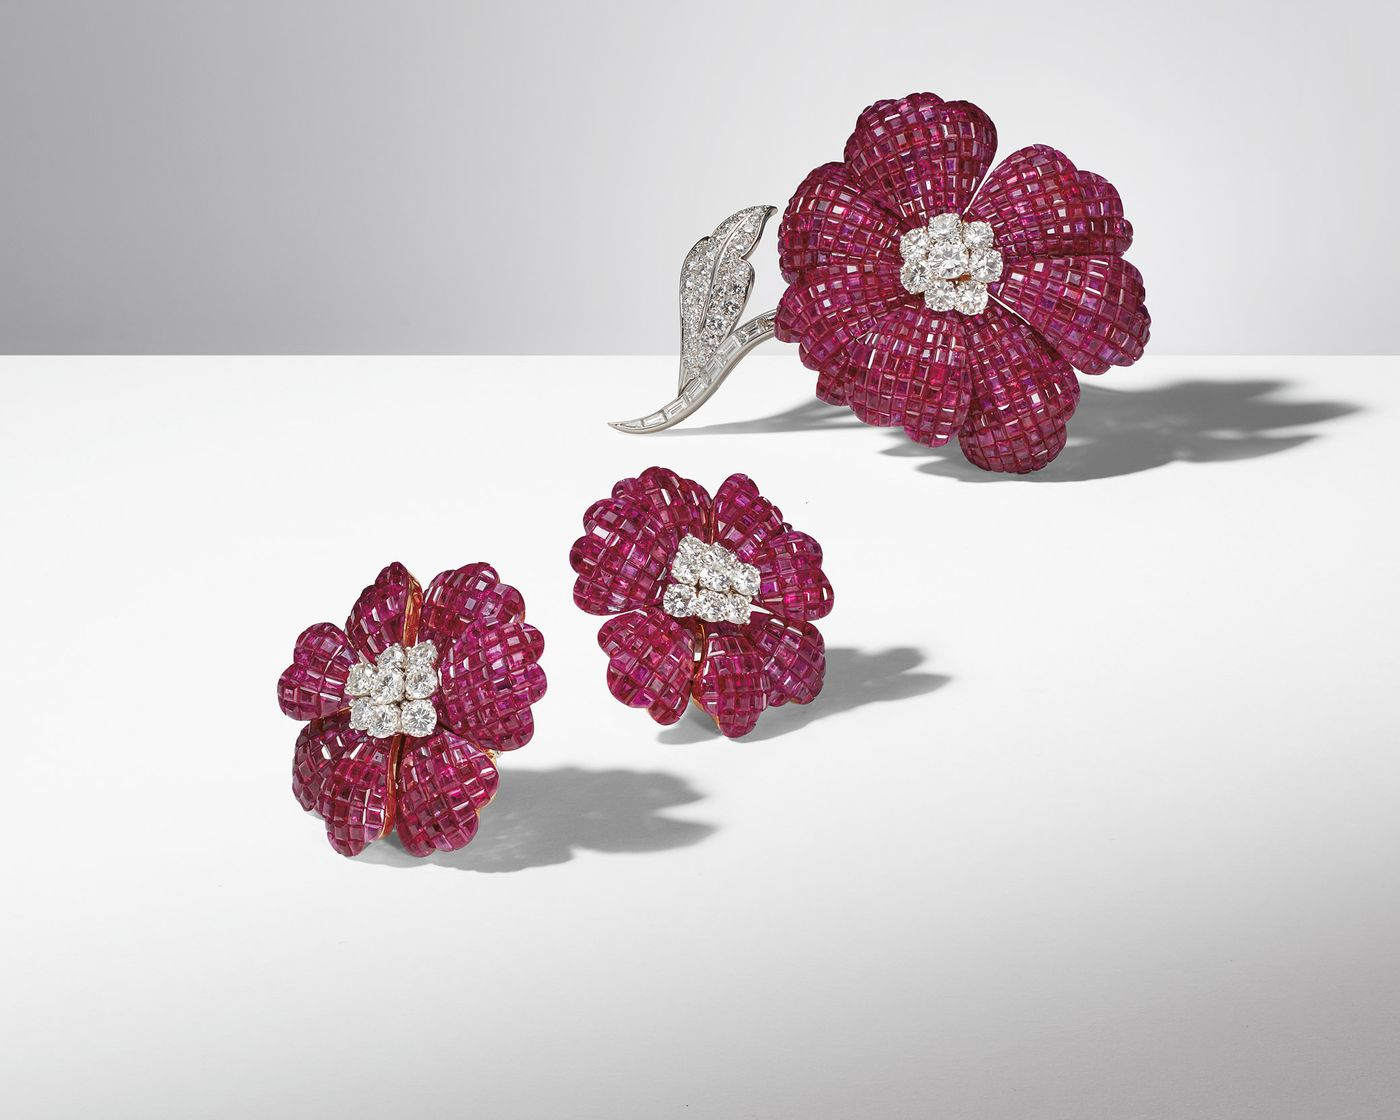 A brooch and pair of earrings in rubies and diamonds highlight the masterful craftsmanship synonymous with Alfredo Aletto and his family's business.